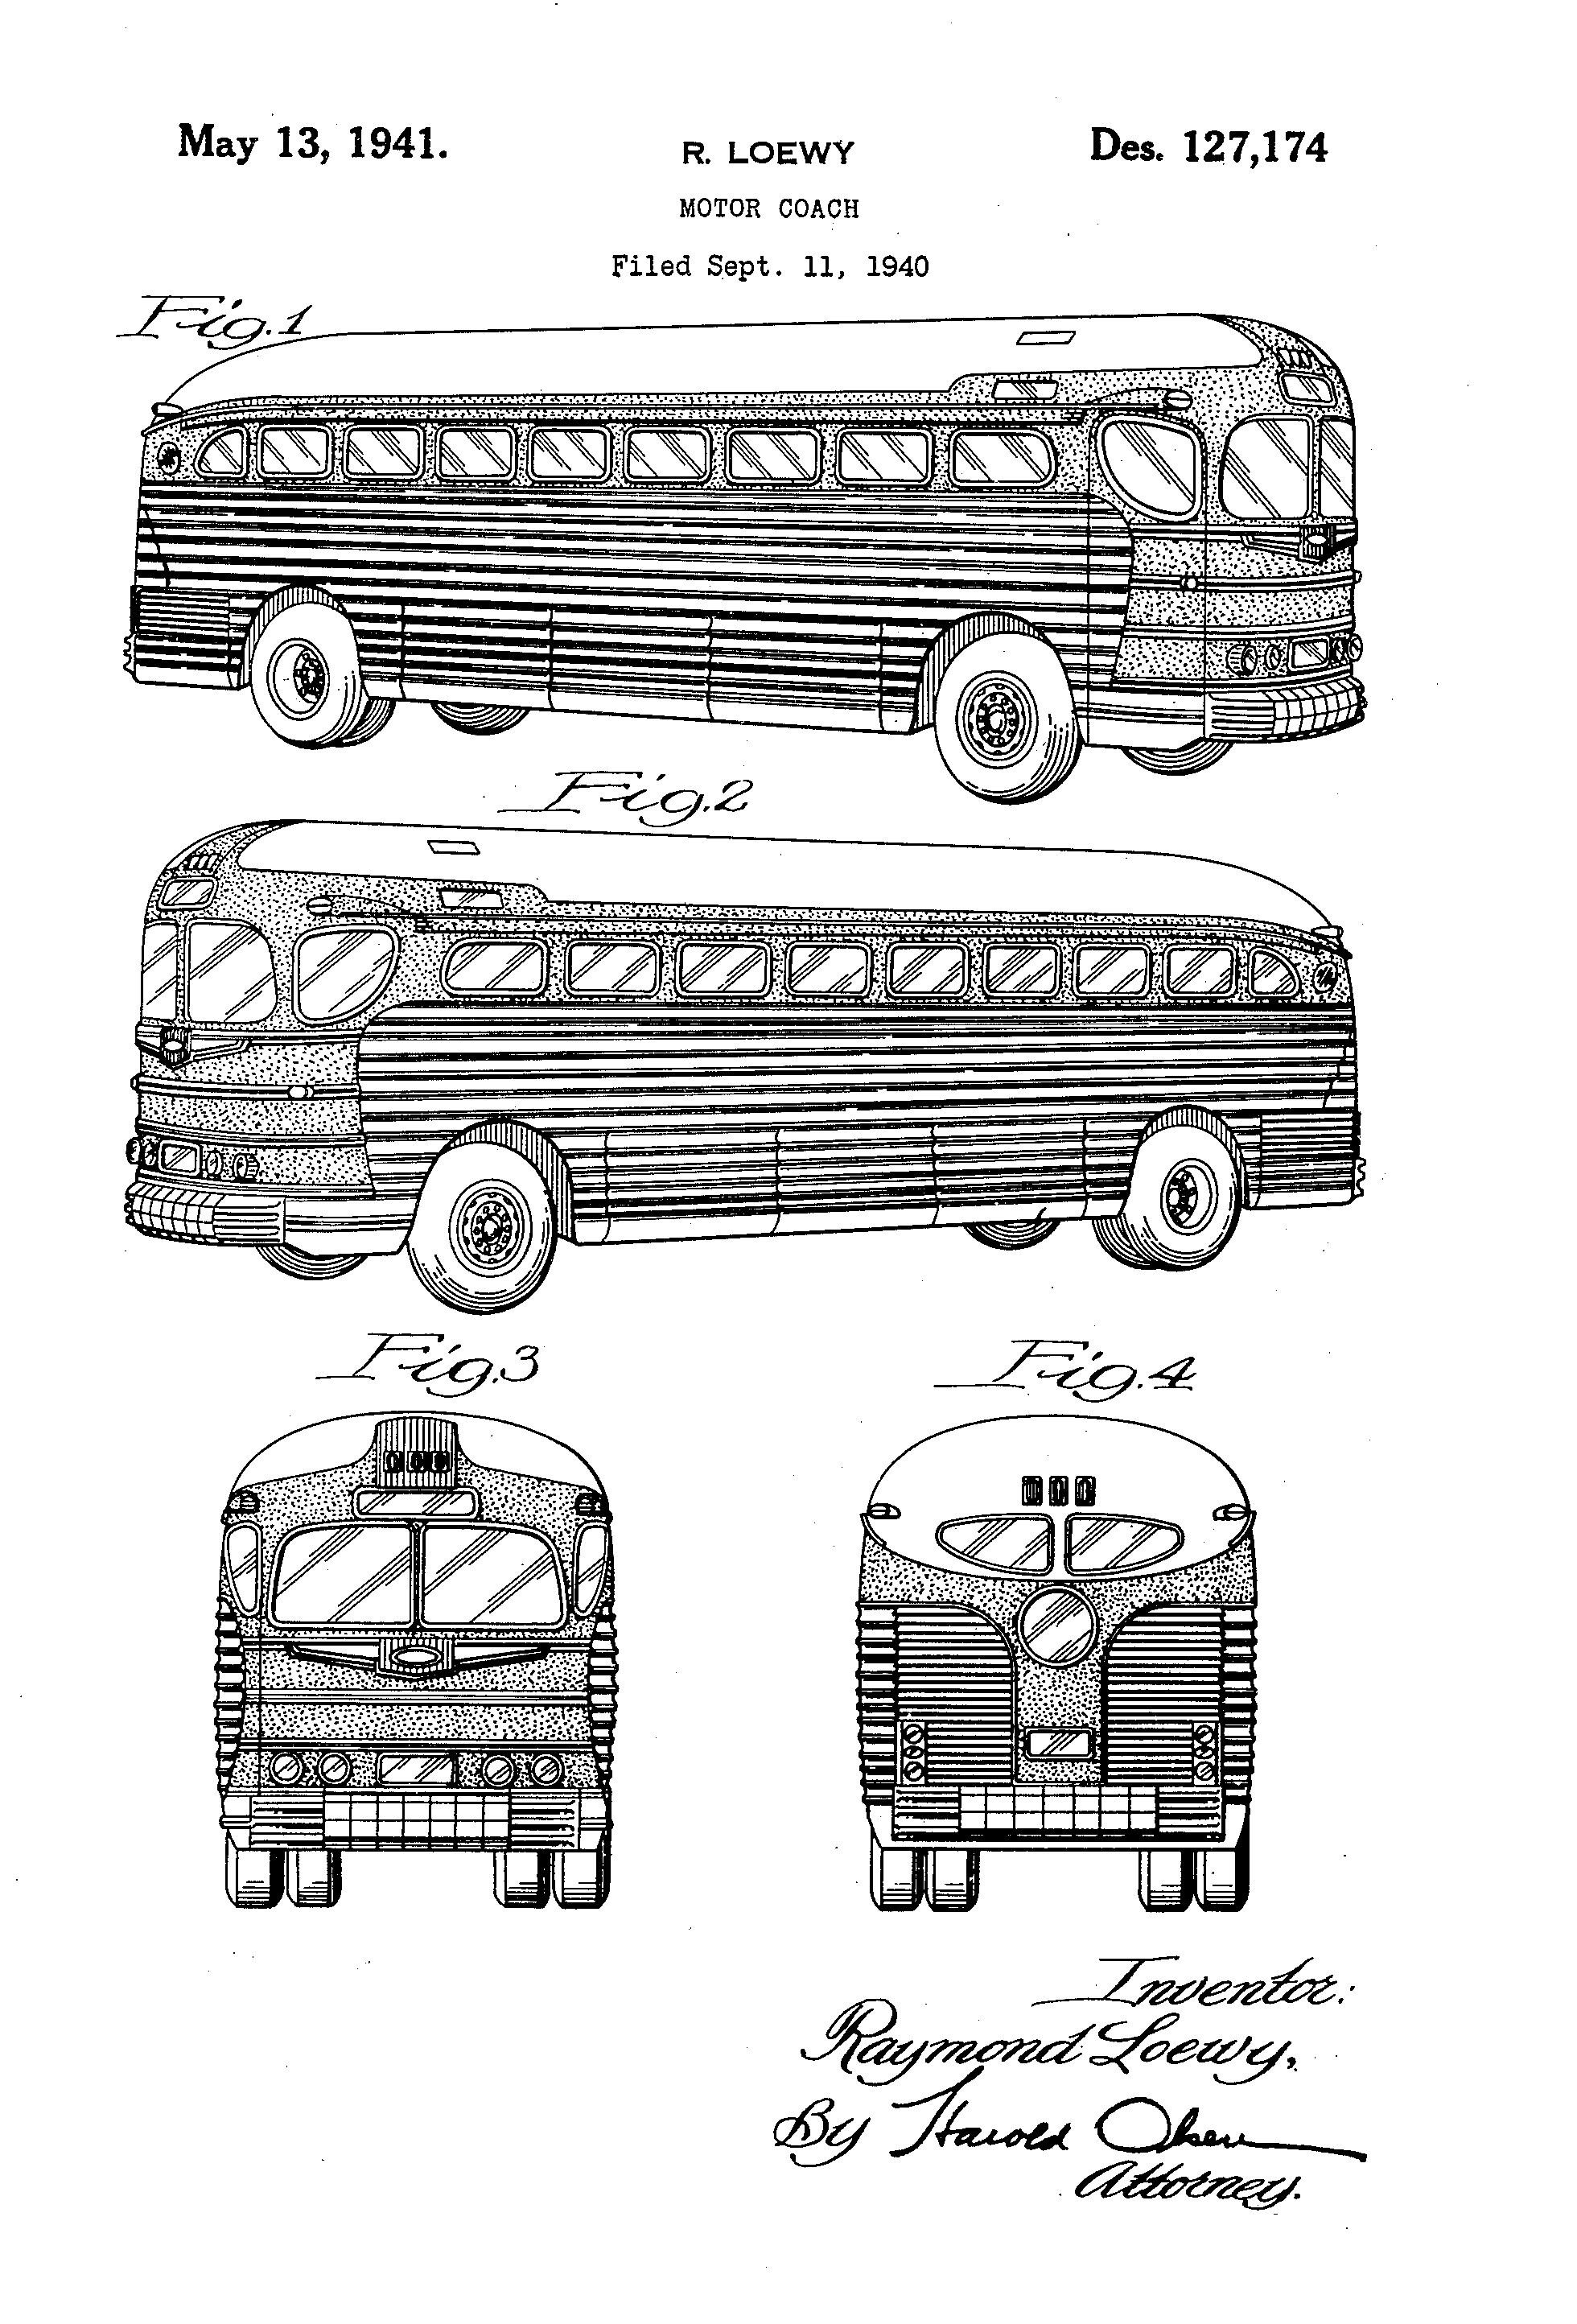 Motor Coach, Raymond Lowey, for Greyhound Corporation, 1940/1941. Patent Number: USD 127,174, U.S. Patent Office